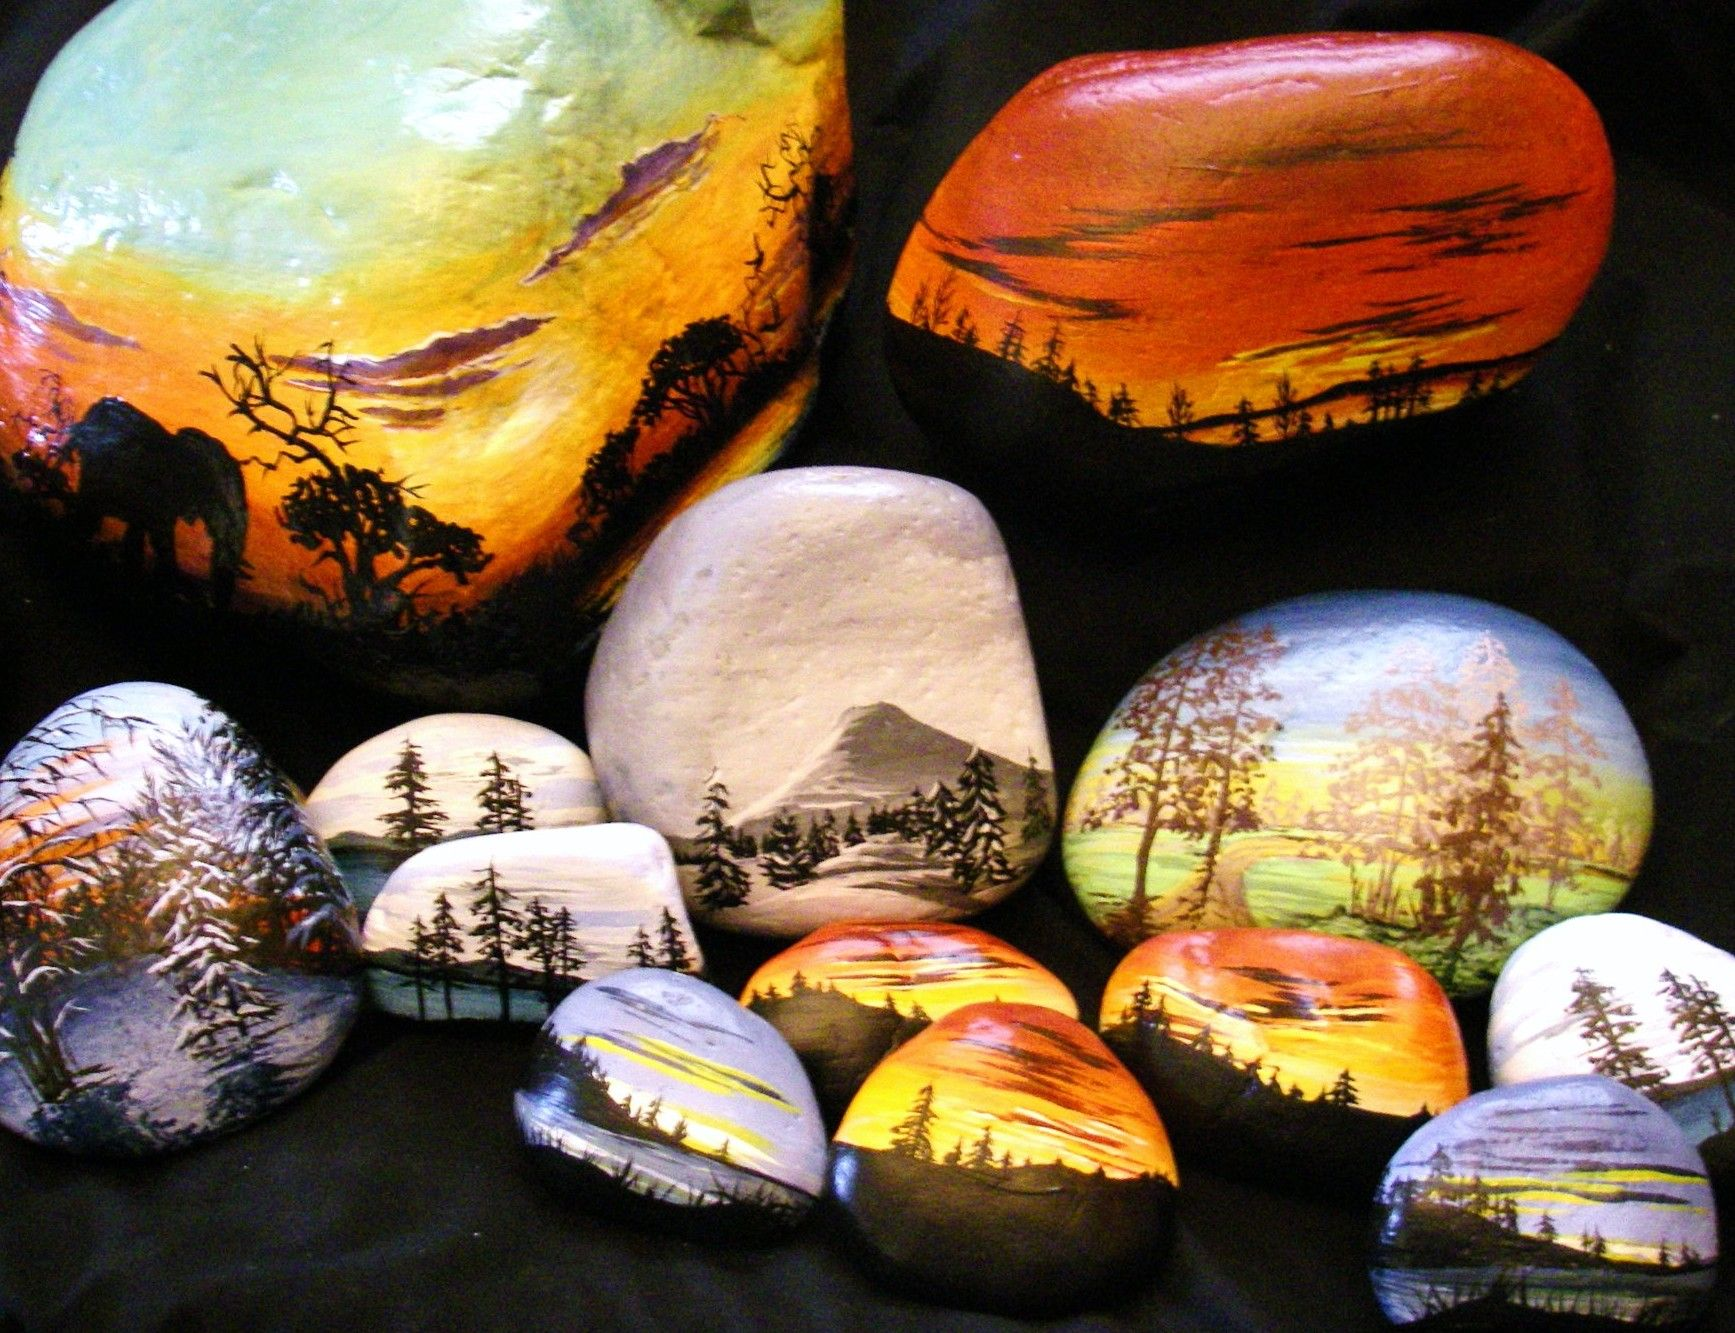 River rock painting ideas images of hand painted bc - River rock painting ideas ...